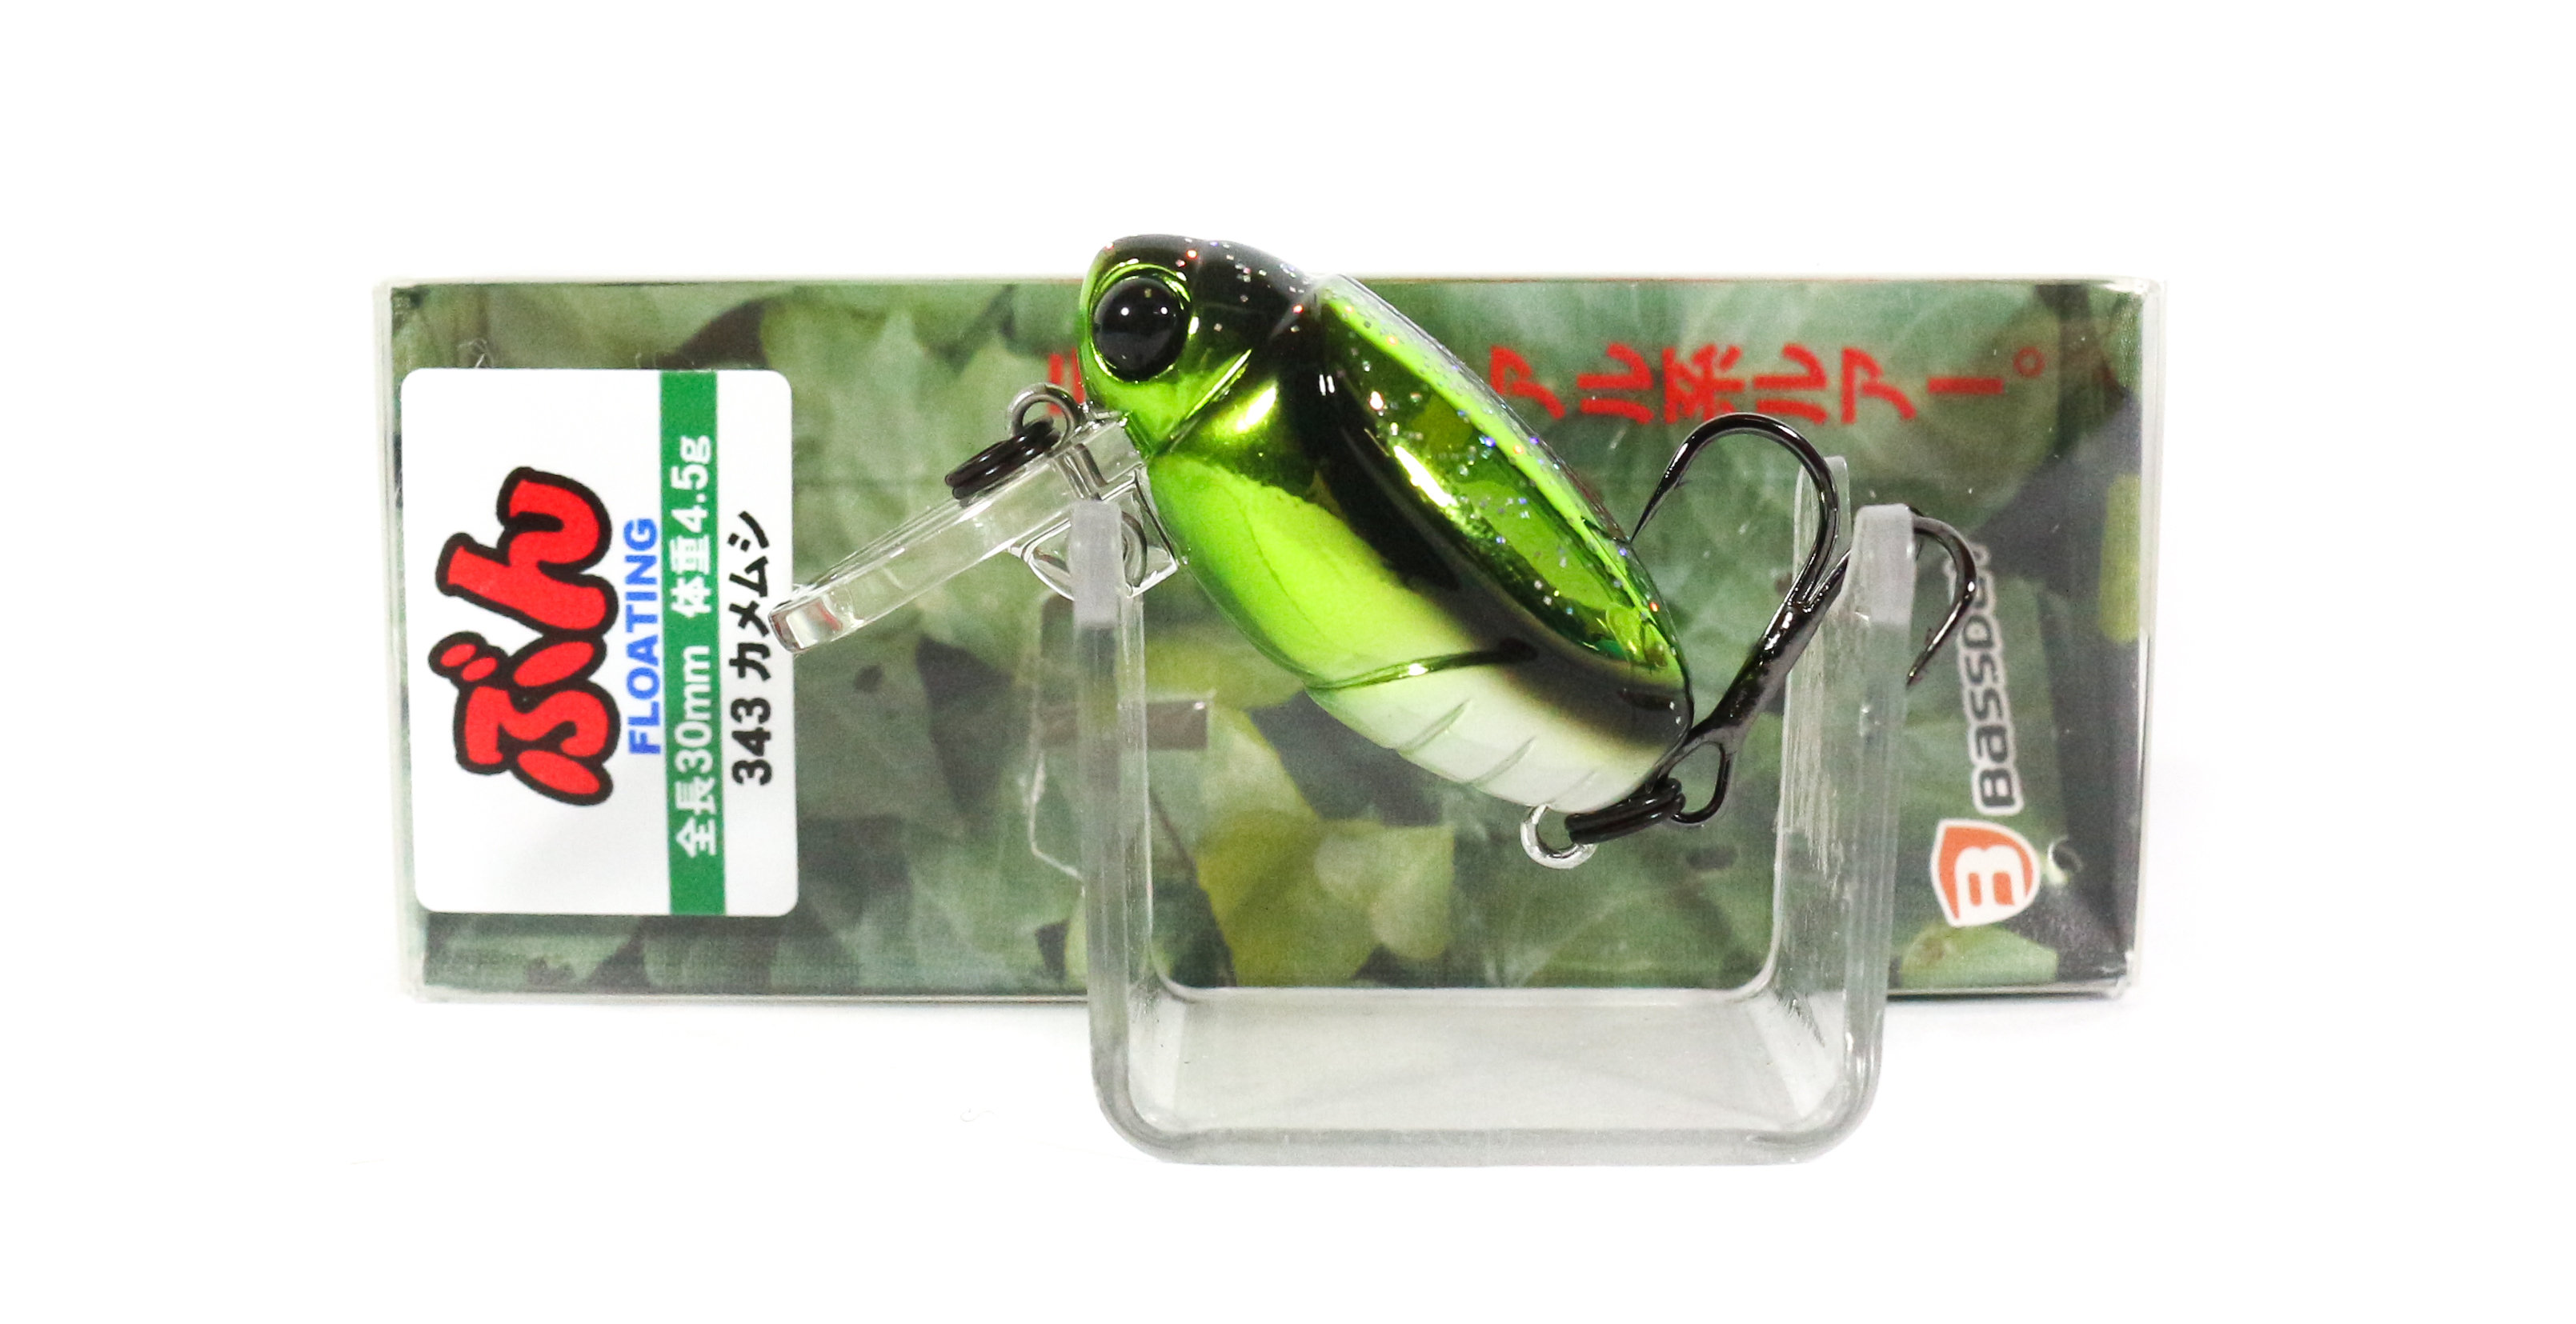 Bassday Beetle Bun 30F Floating Lure 4.5 grams 343 (3396)